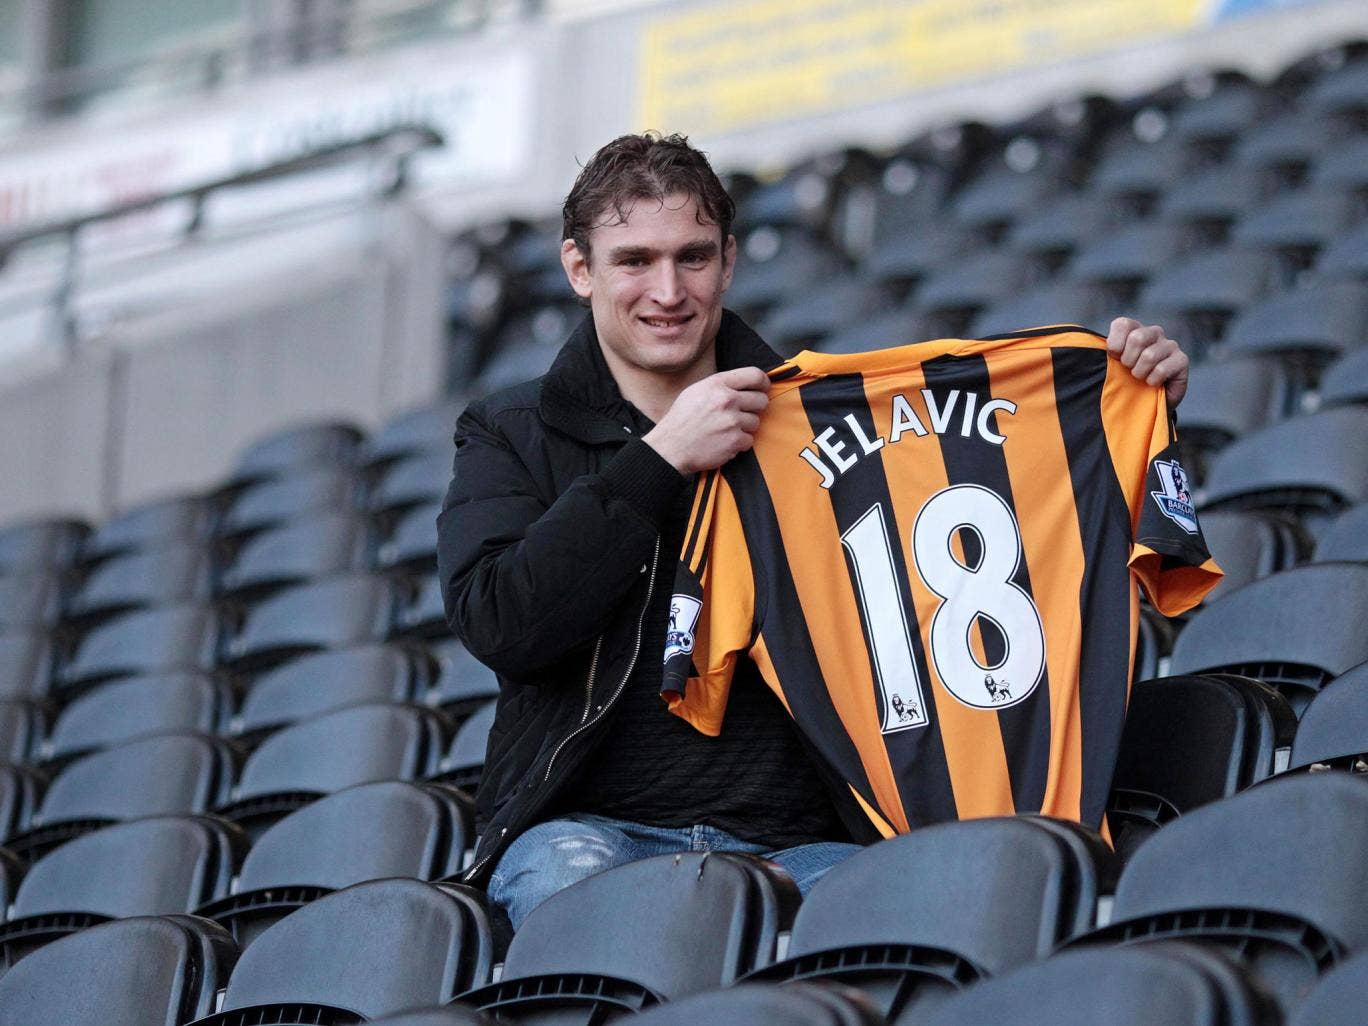 Nikica Jelavic, one of Hull's new signings, is unveiled at the KC Stadium. With his top-flight experience he should soon make an impact